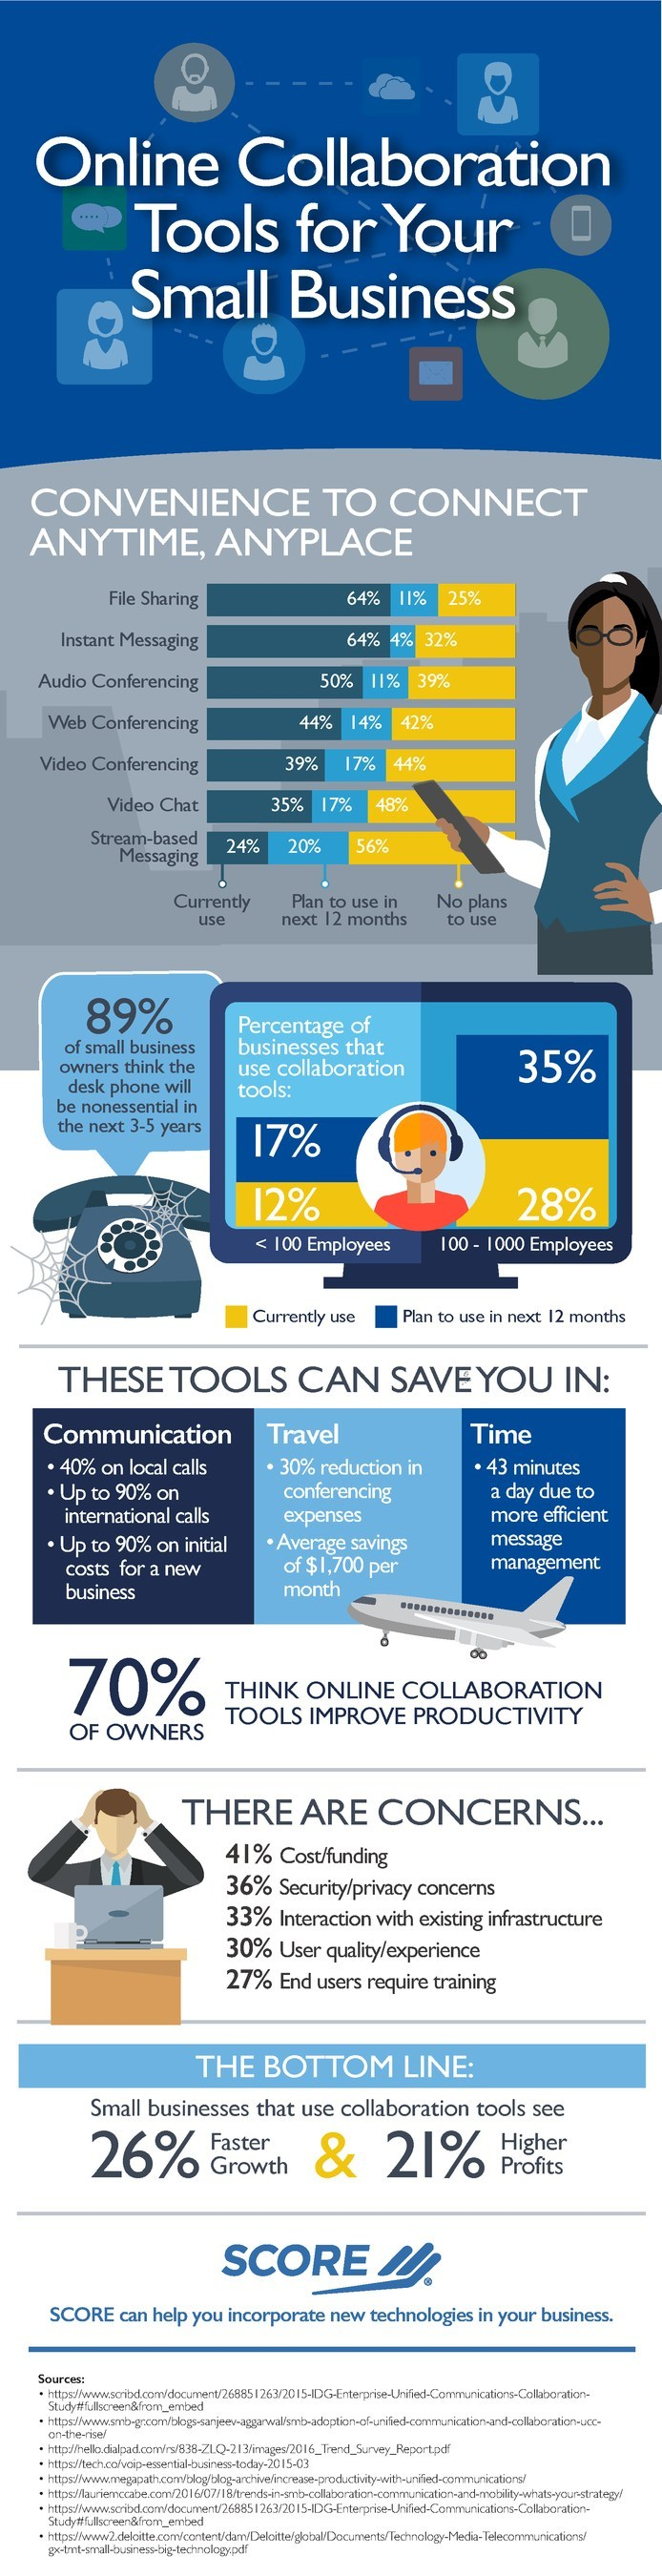 SCORE, the nation's largest network of volunteer, expert business mentors, has published an infographic showing how small businesses that use online collaboration tools see 26% faster growth and 21% higher profits.